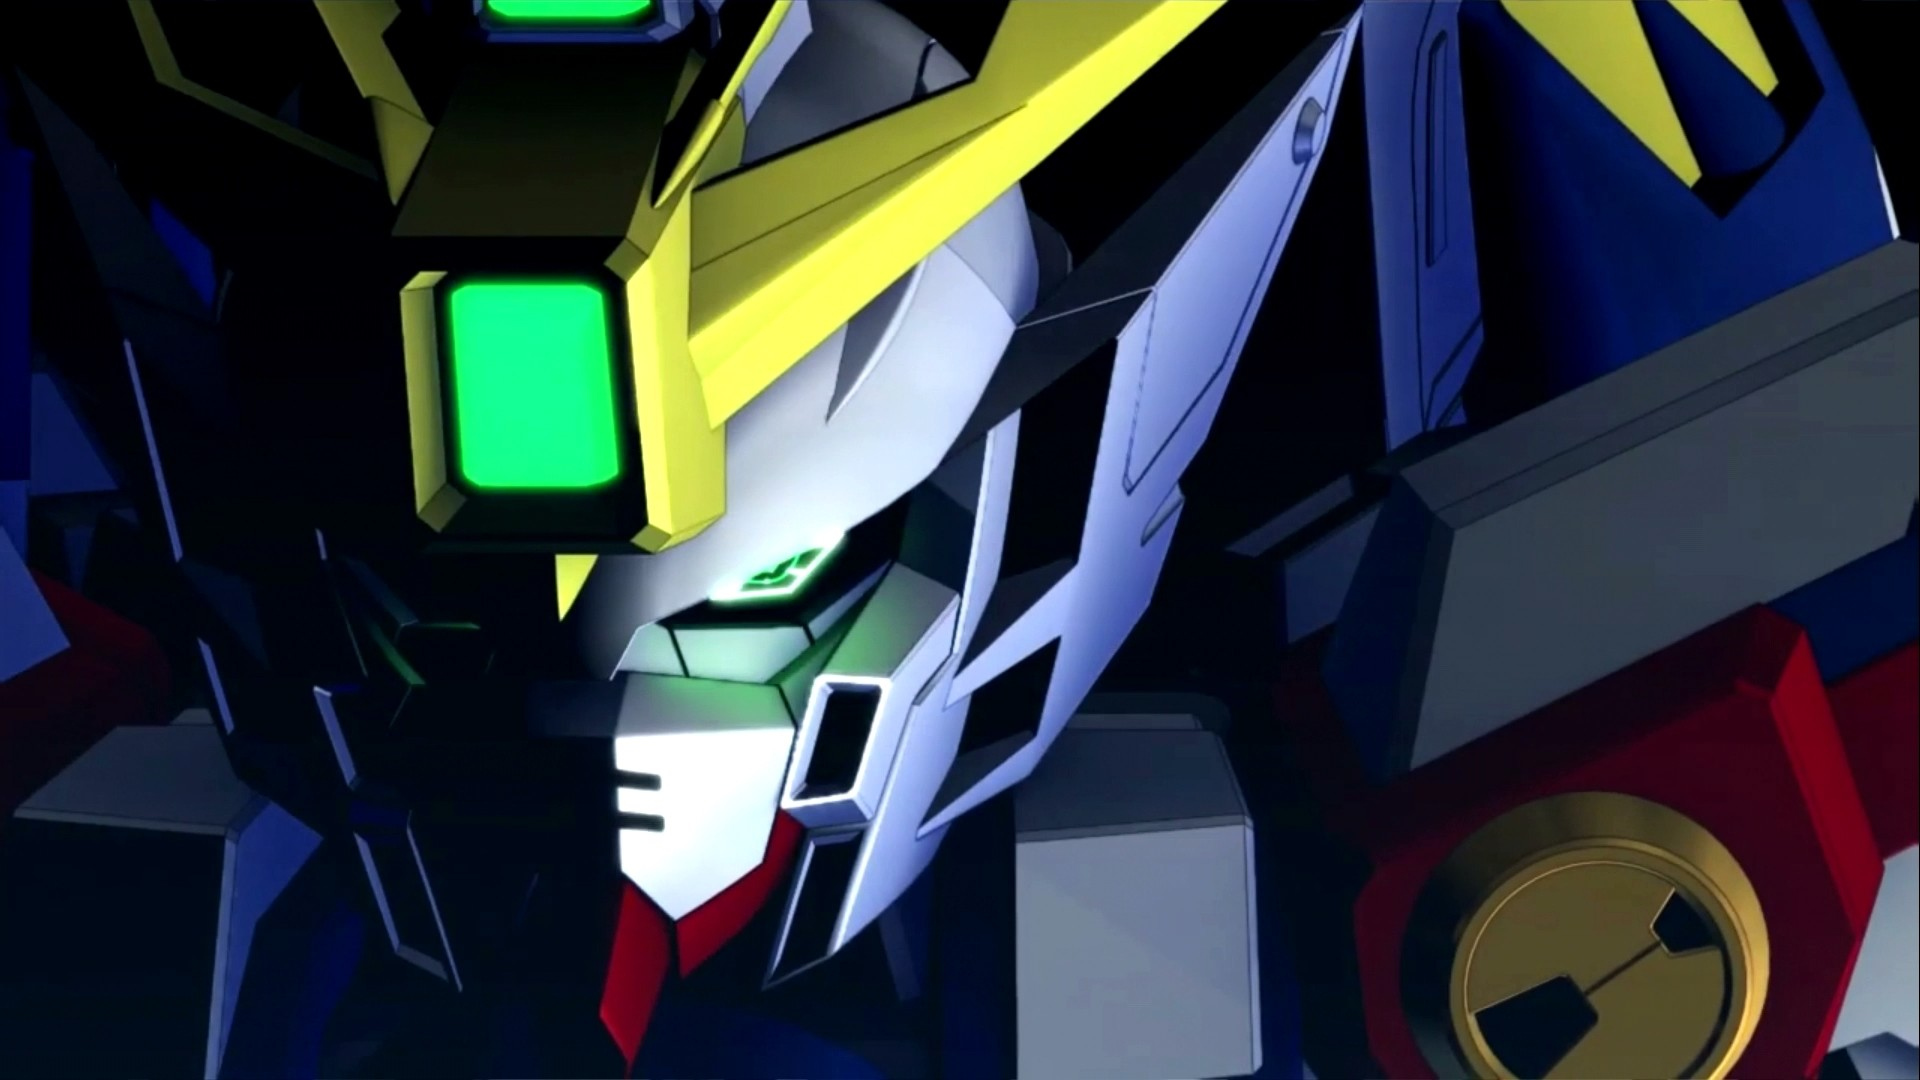 SD Gundam G Generation Cross Rays, SD Gundam G Generation Cross Rays Premium G Sound Edition, Premium G Sound Edition, PlayStation 4, Nintendo Switch, PS4, Switch, Japan, release date, gameplay, features, price, pre-order